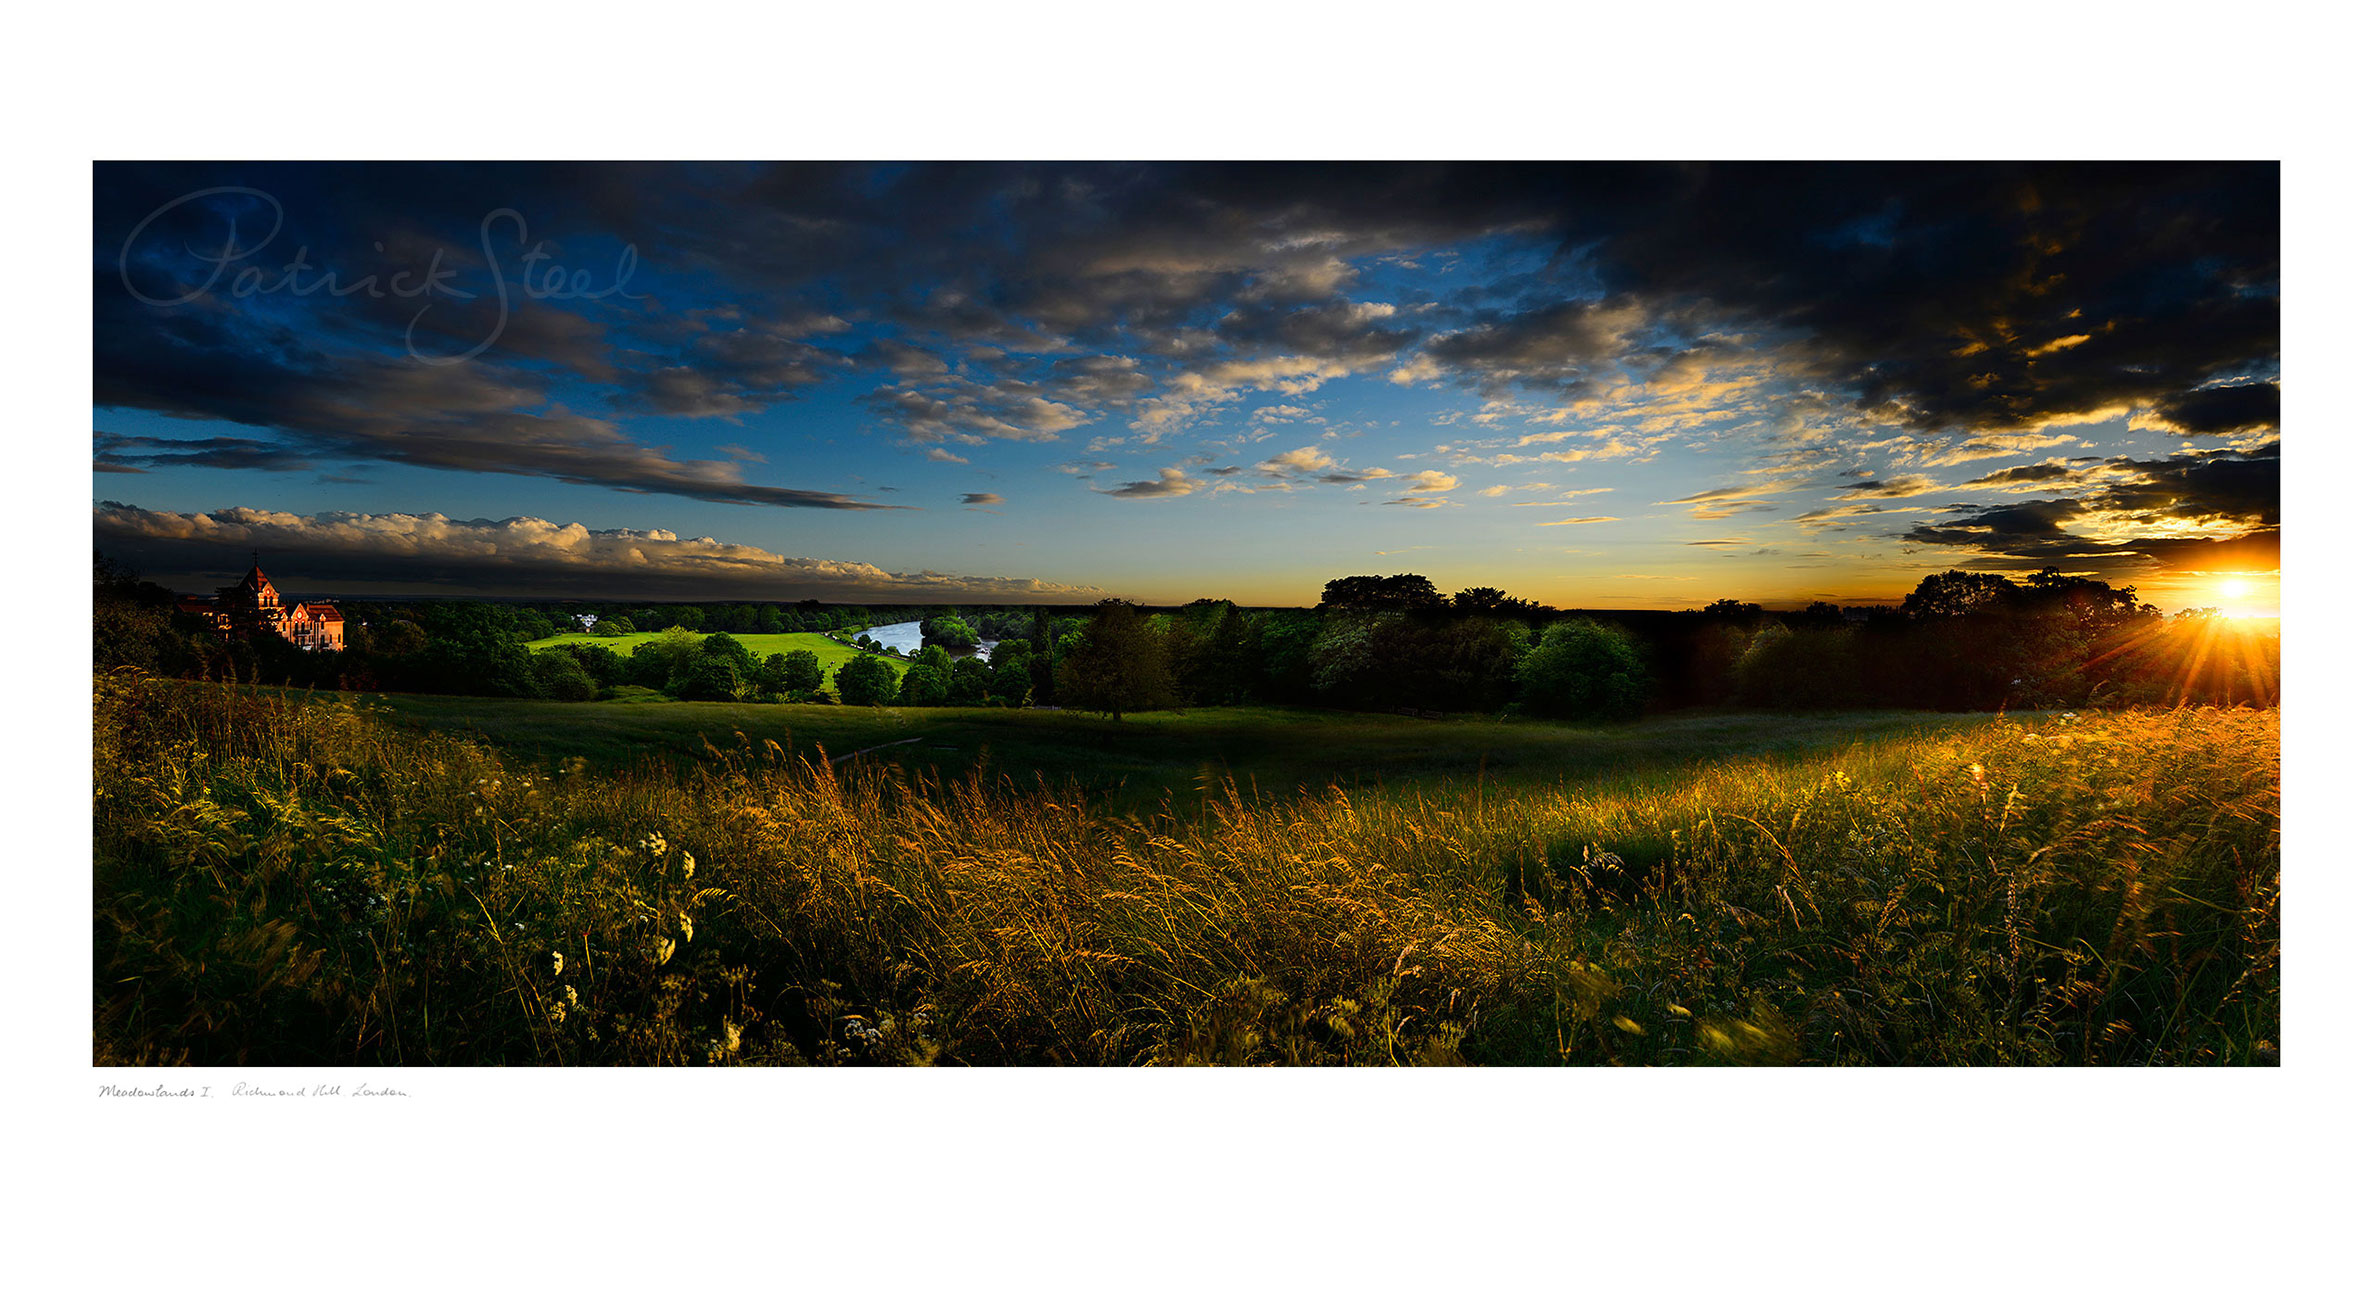 panoramic photograph taken from Richmond Hill by Professional Landscape Photographer Patrick Steel